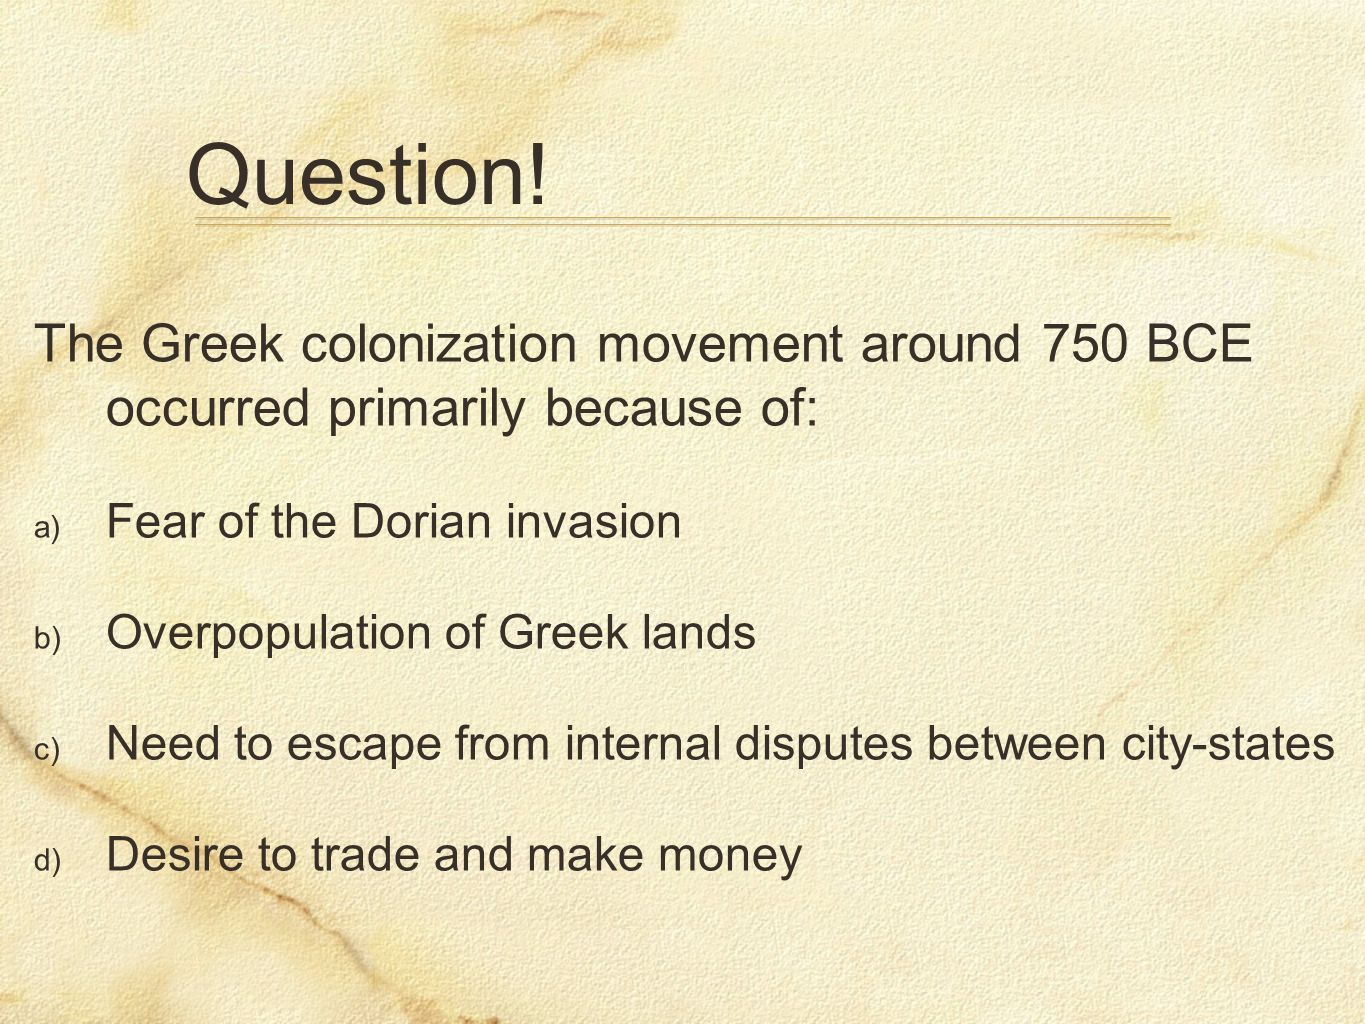 Question! The Greek colonization movement around 750 BCE occurred primarily because of: Fear of the Dorian invasion.